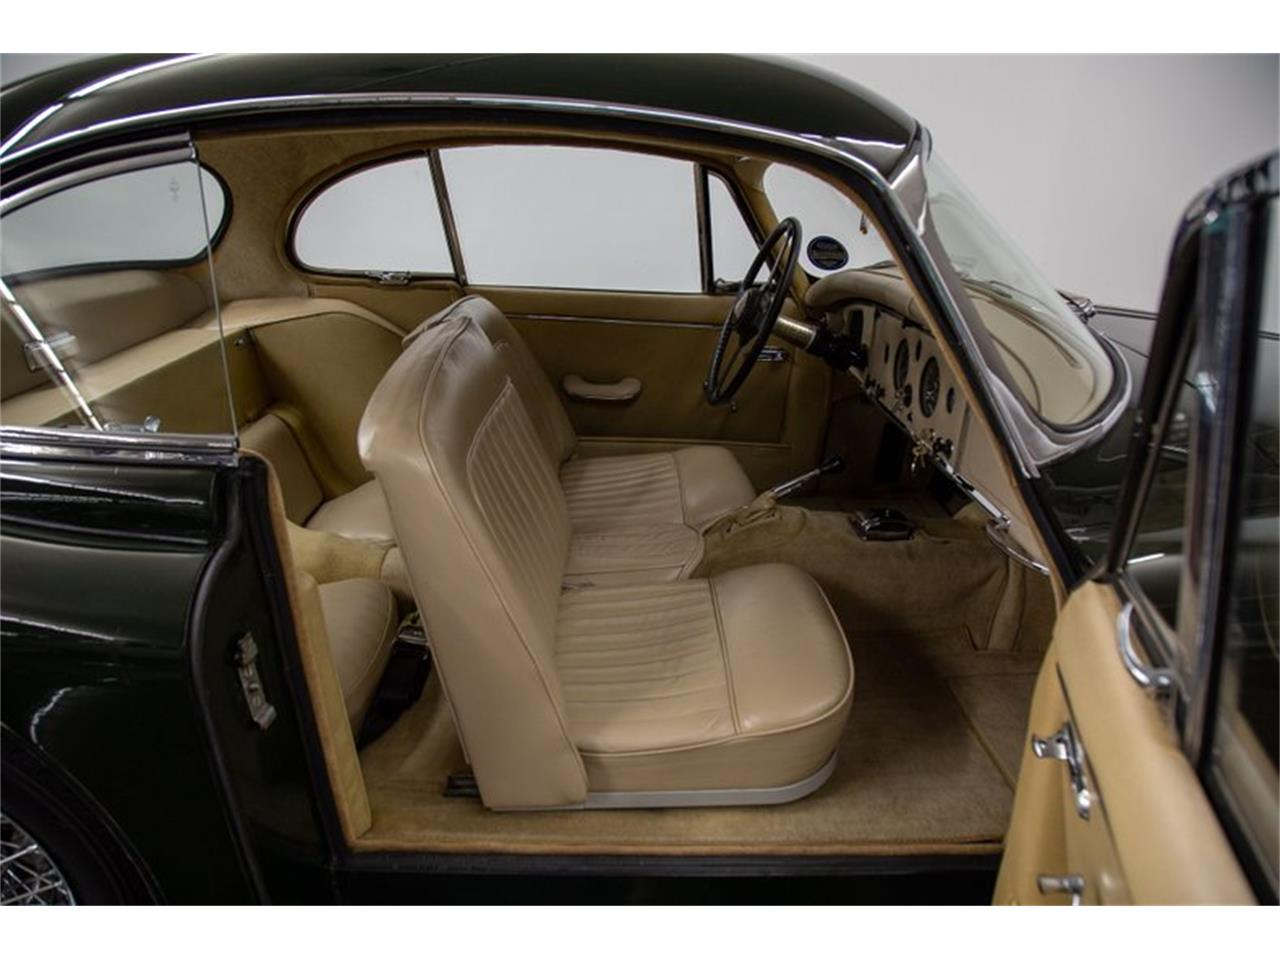 1961 Jaguar XK (CC-1343541) for sale in St. Louis, Missouri